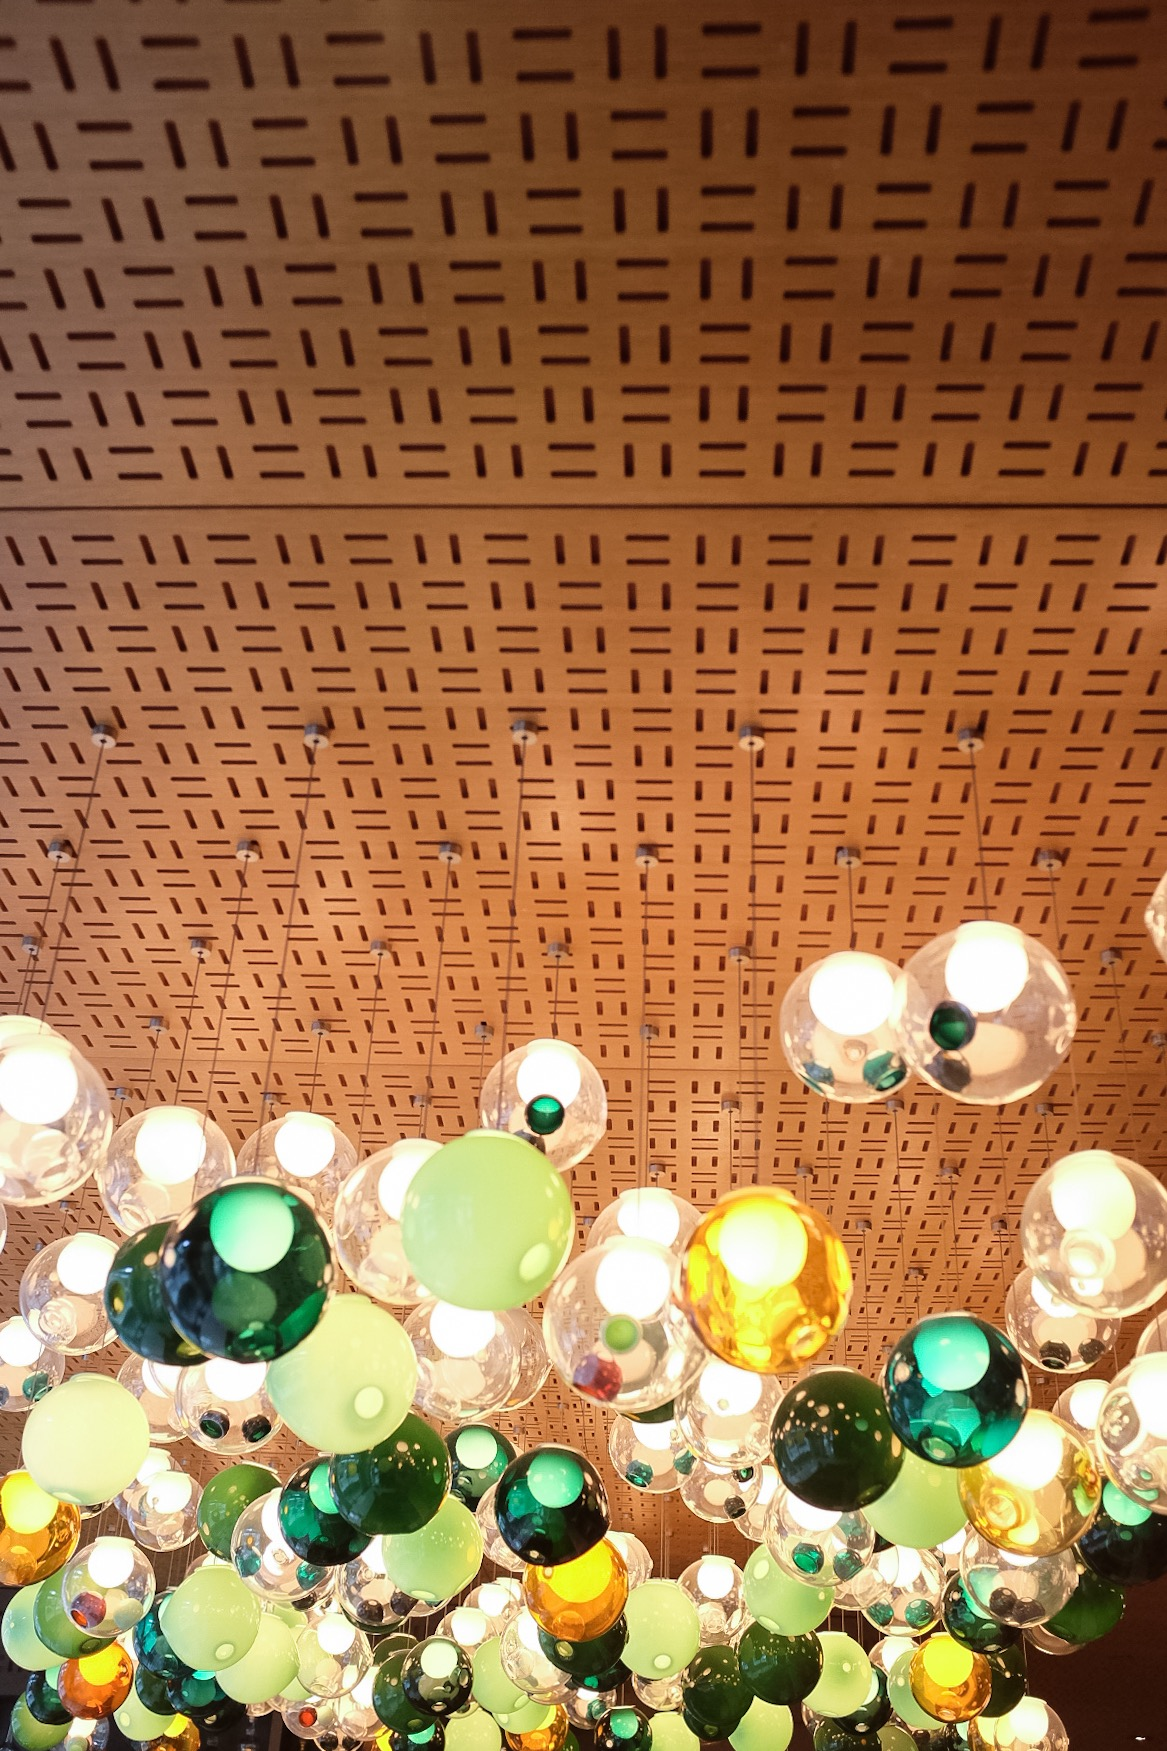 The wonderful ceiling decor at Bosk.